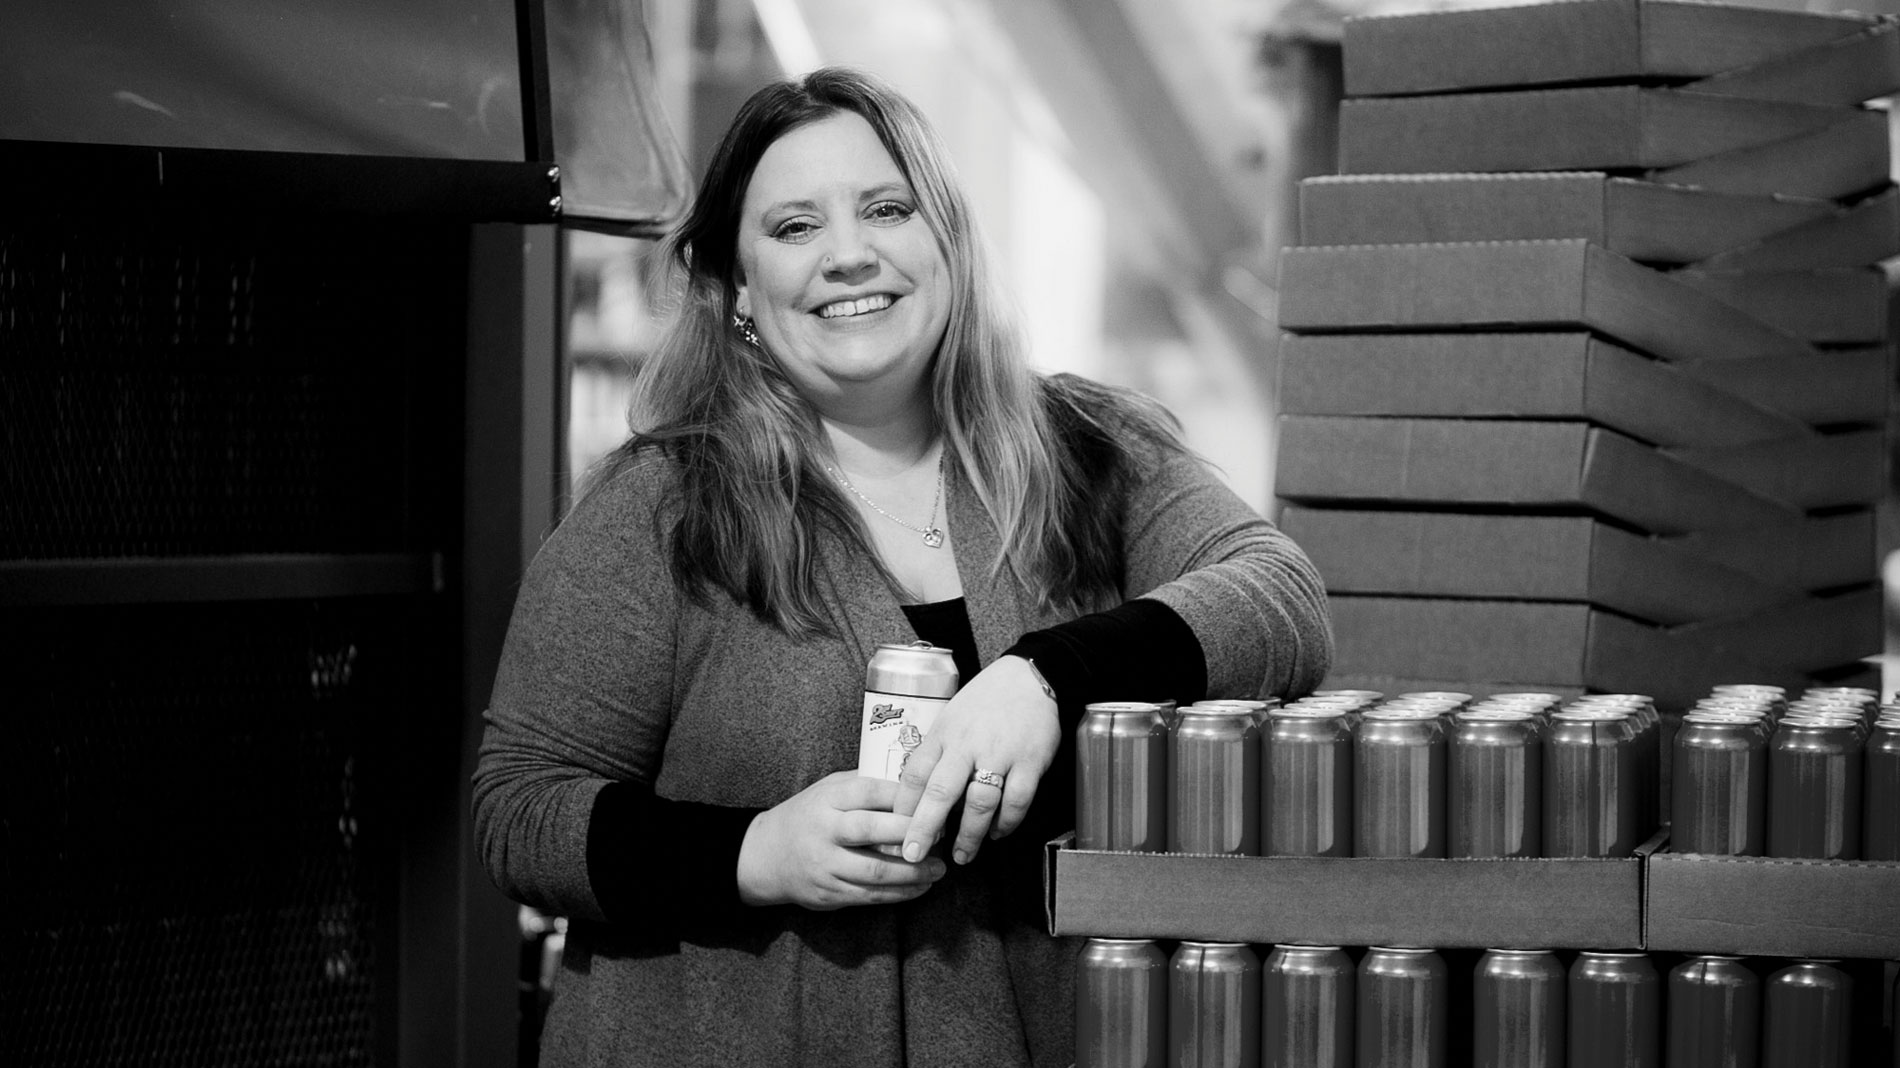 a smiling woman holding a can of beer and leaning against pallets of beer